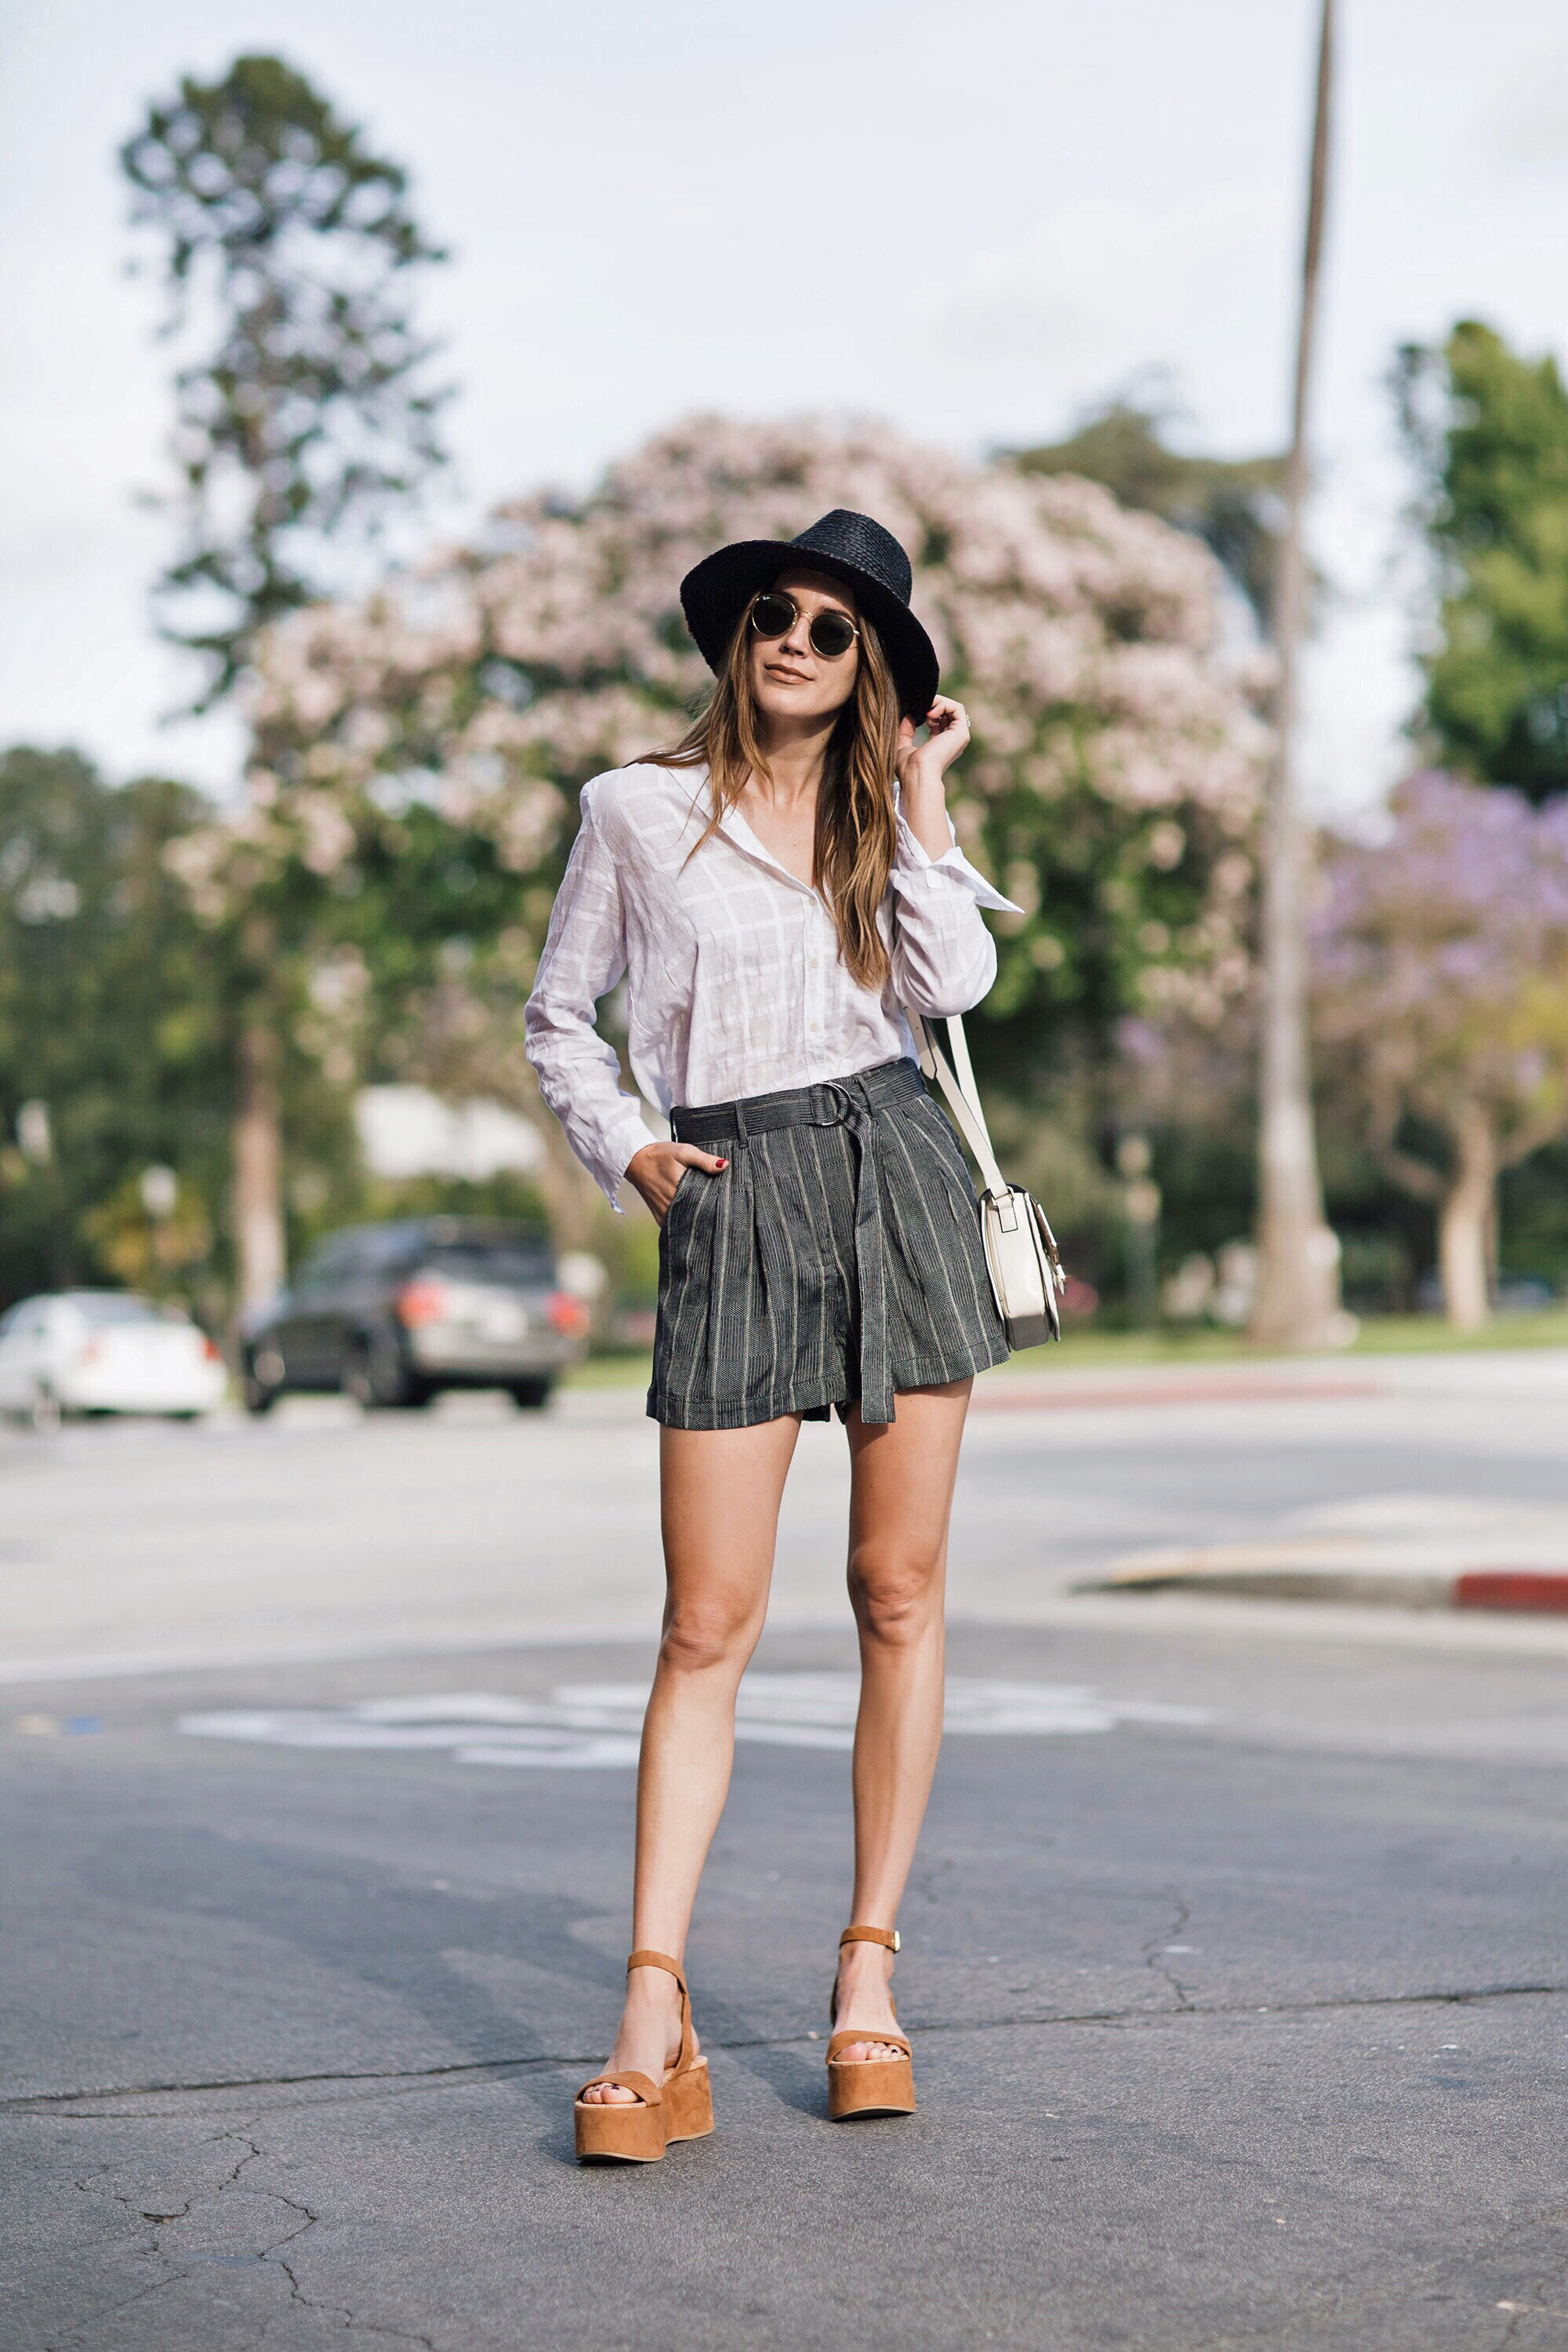 Topshop Shorts Black Straw Hat